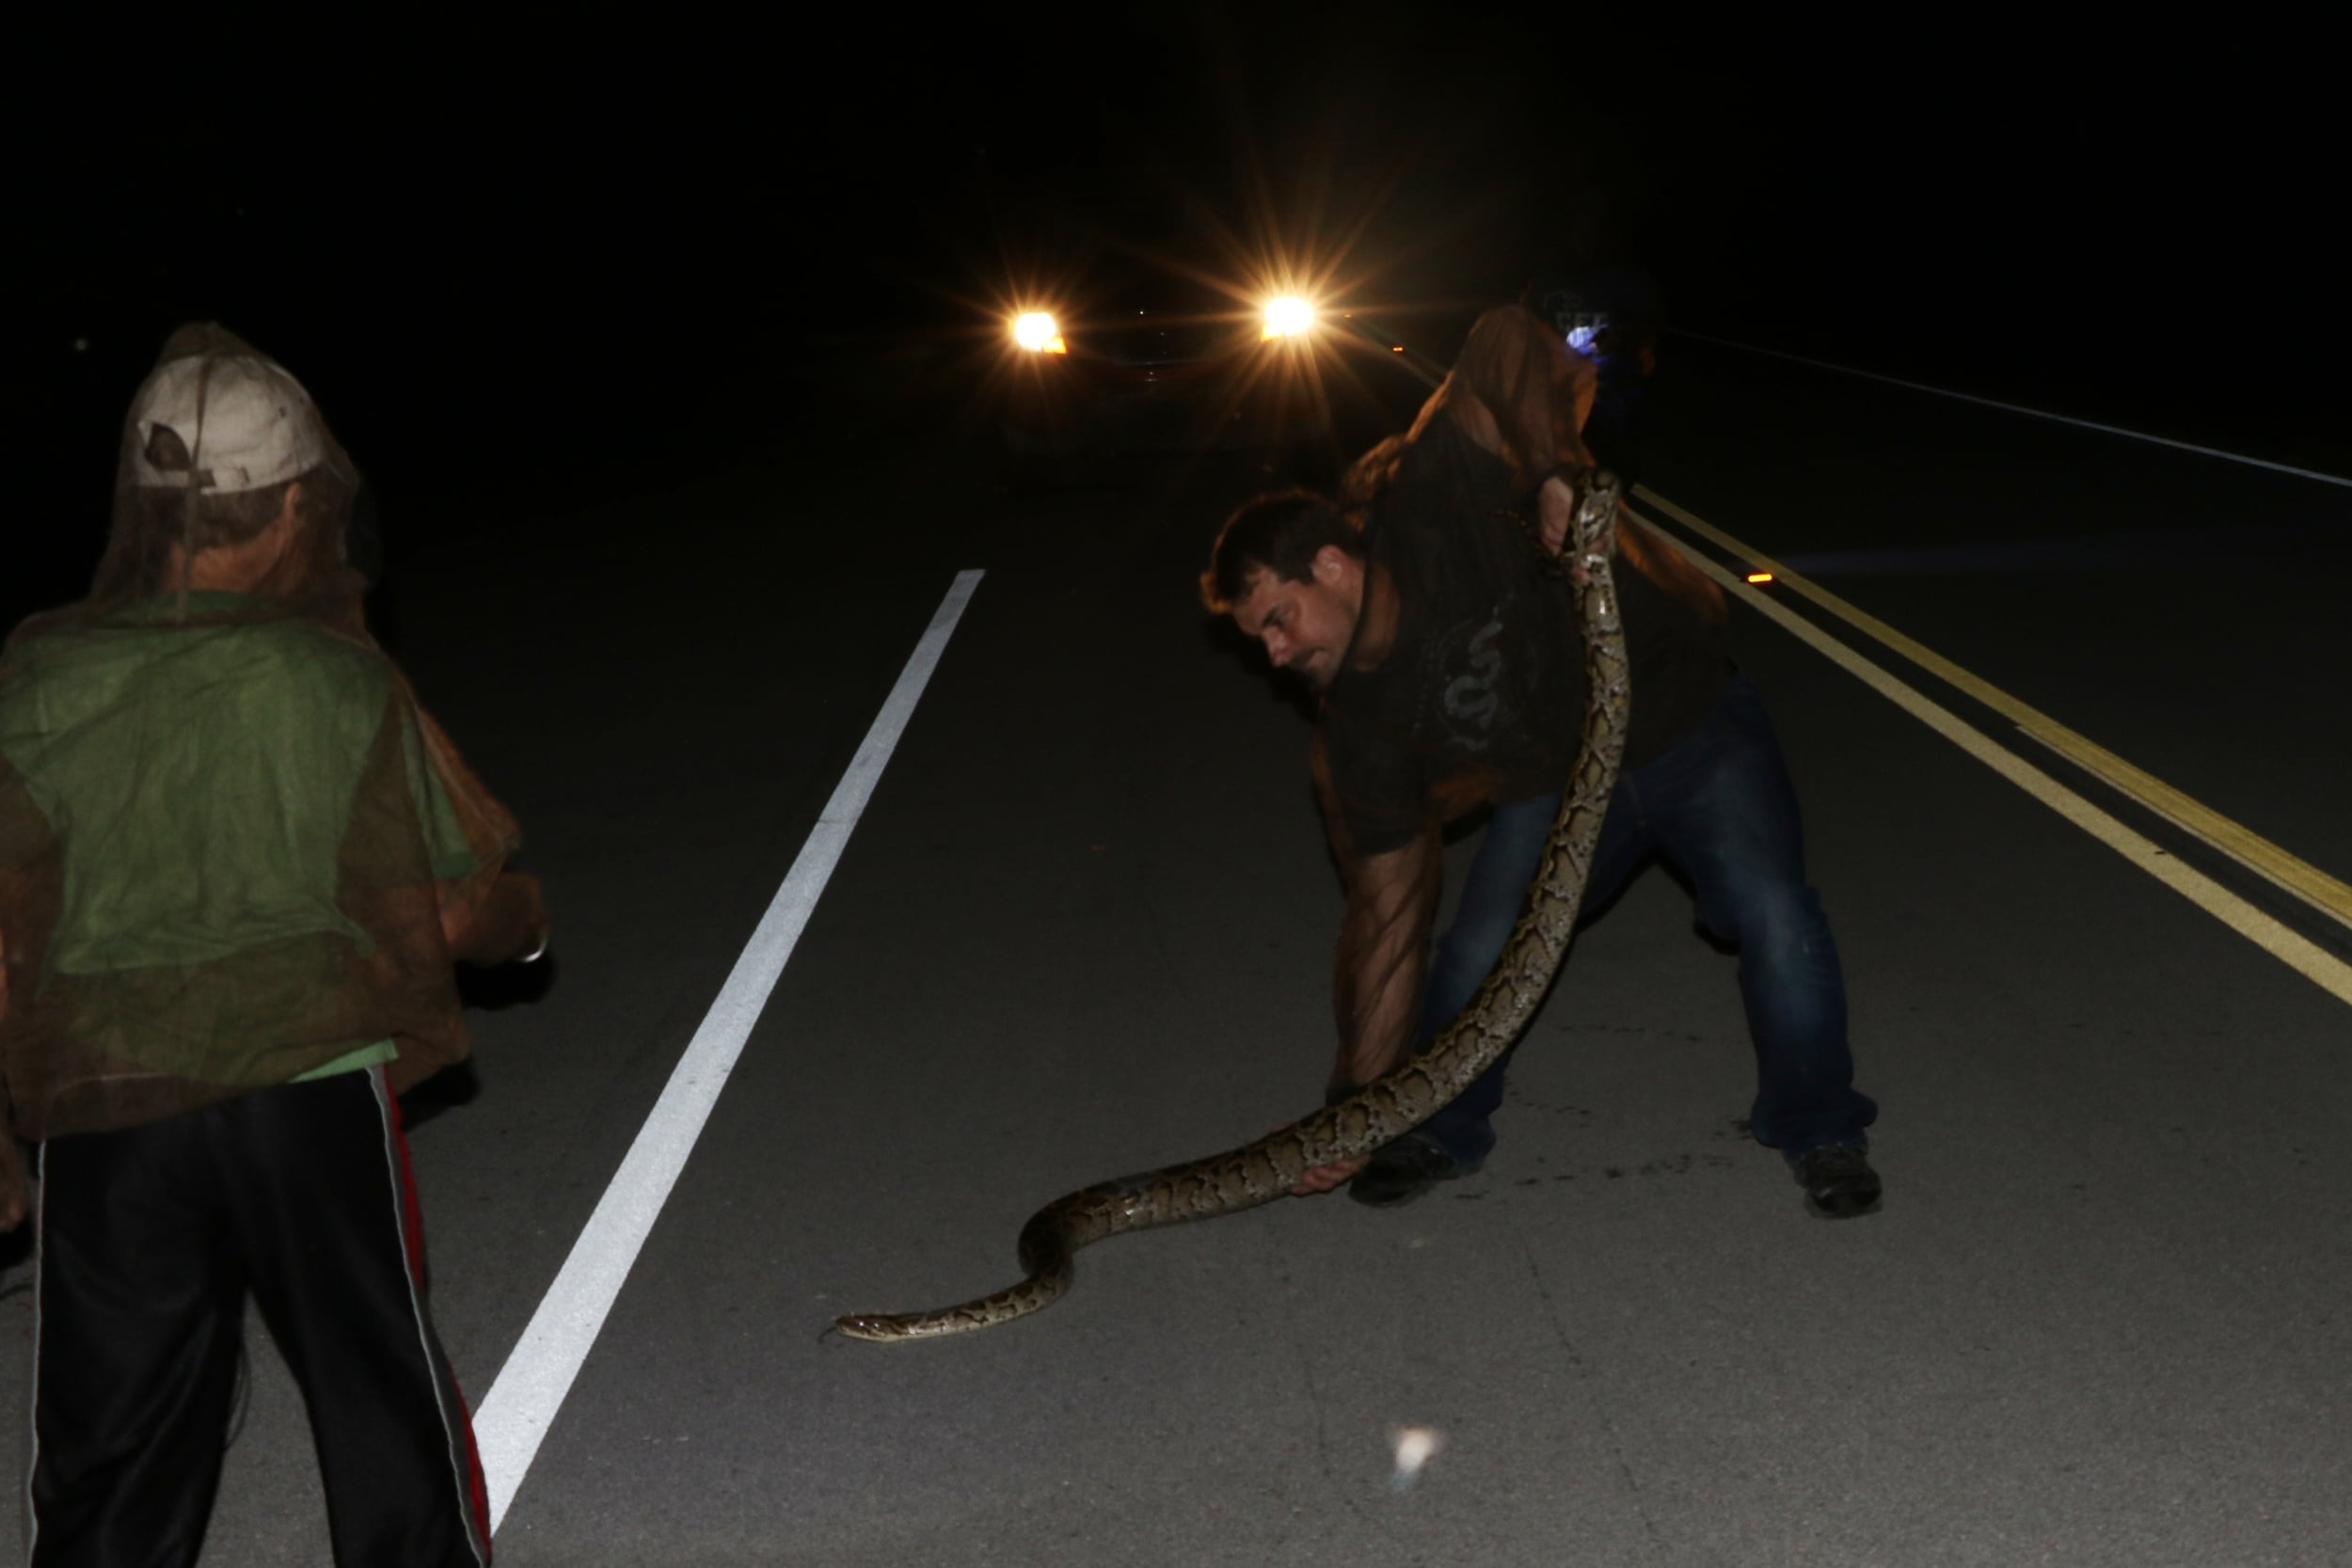 Burmese Python - That's me with the snake for size reference. While this may be blasphemous, I'm just going to say it. This was the funnest snake of the year. We cruised it half onto the road. We looked in disbelief as I slammed on the brakes. The snake doubled back into the vegetation. I ran after it and grabbed it. I wrestled it out of the tangles and the thing turned and bit me on the leg. I didn't feel pain, but I felt it. It struck a few more times before it settled down. Later, my leg had bled through my jeans. The natural high hid any inkling of a bite. In the end, it was no big deal, but like I said - it was FUN.